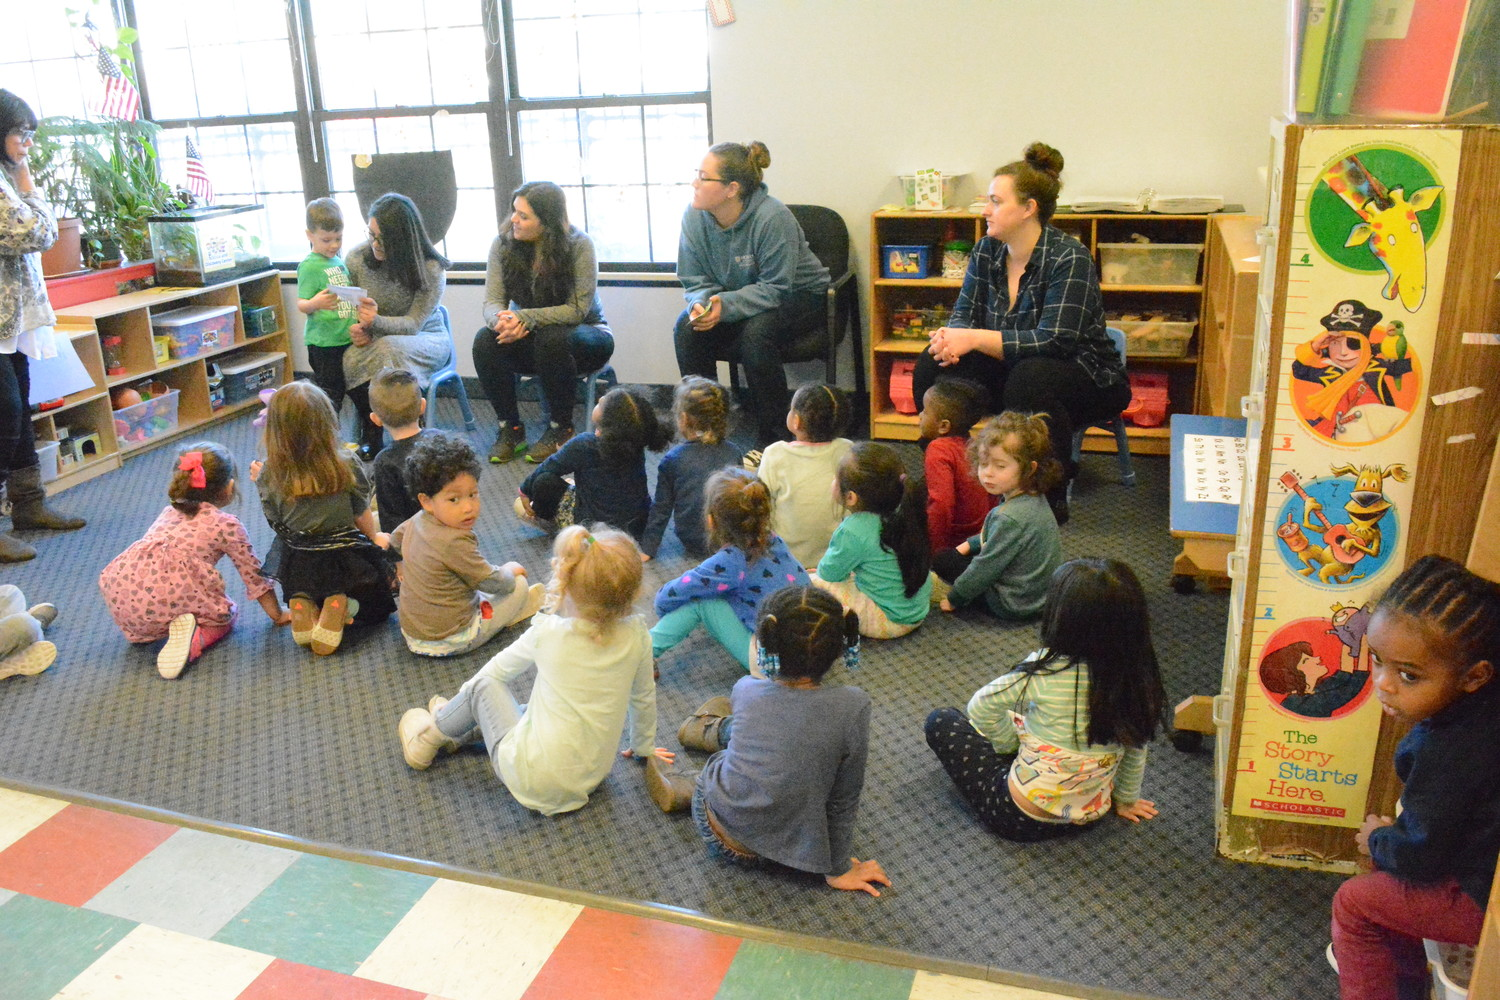 Baldwin students got a hands-on lesson in child care during Shadow Day.